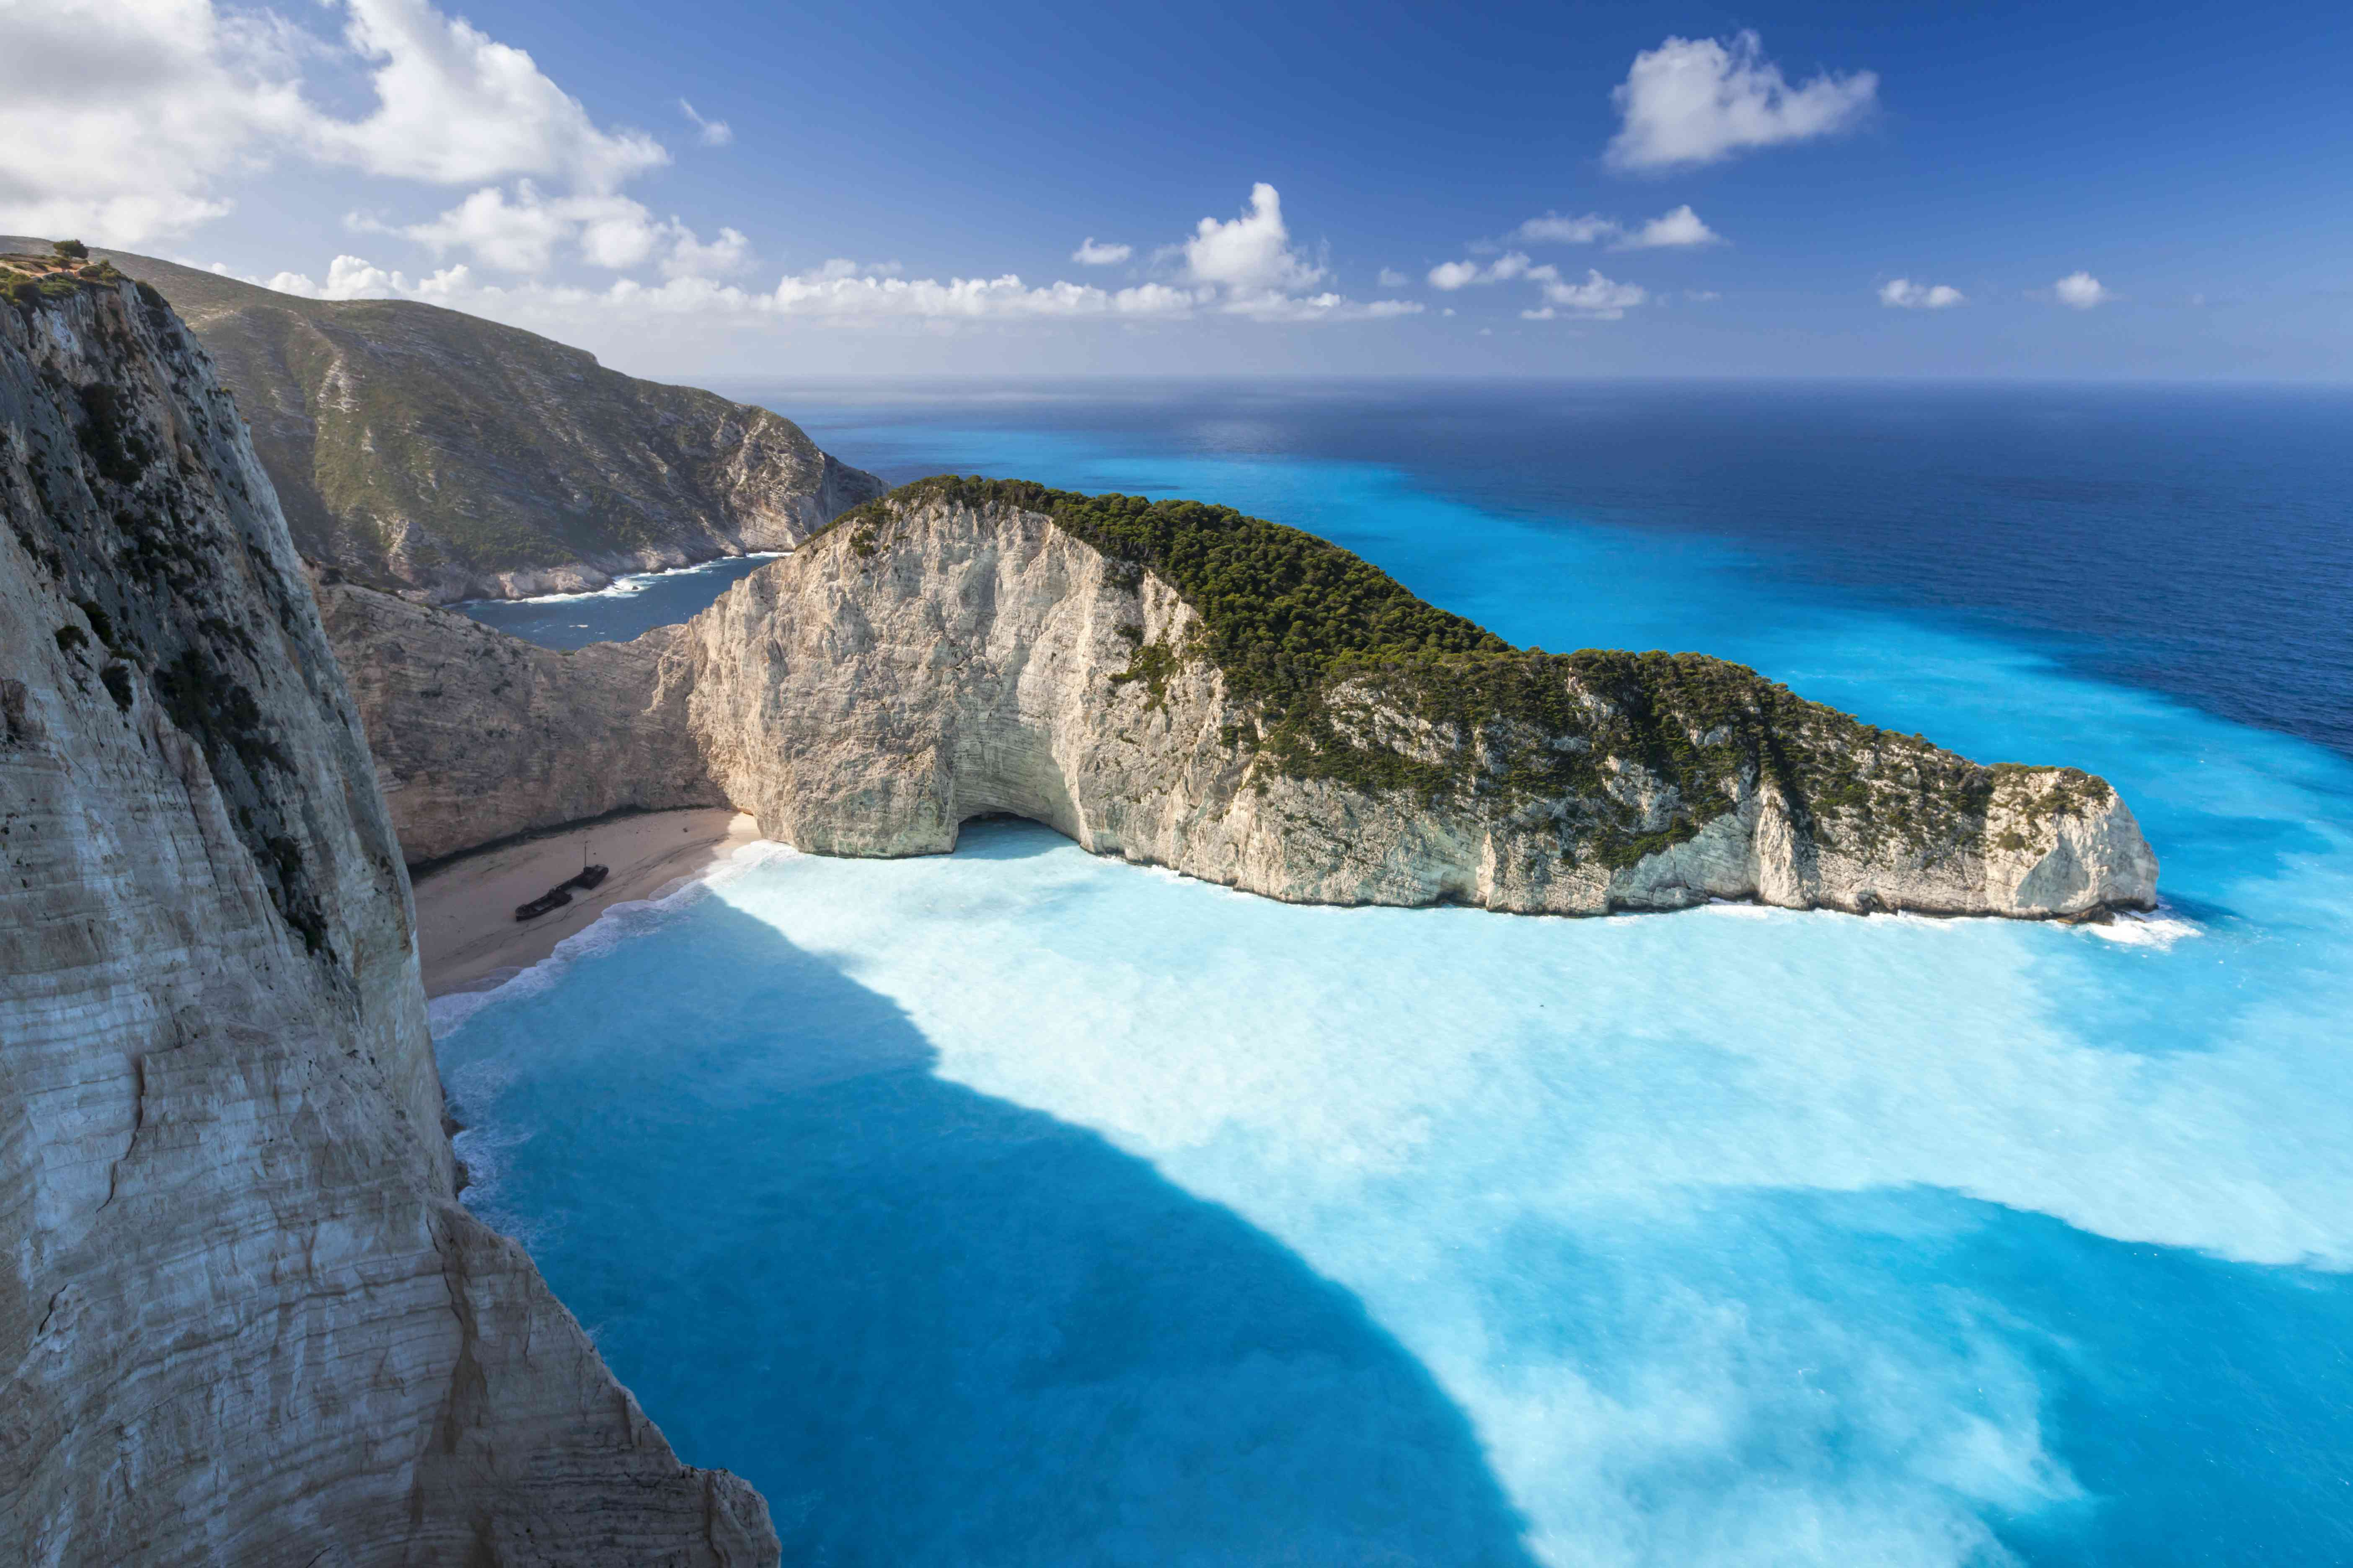 The white cliffs of Navagio Beach rise above the shipping vessel on the sand below with bright blue waters stretching to the horizon